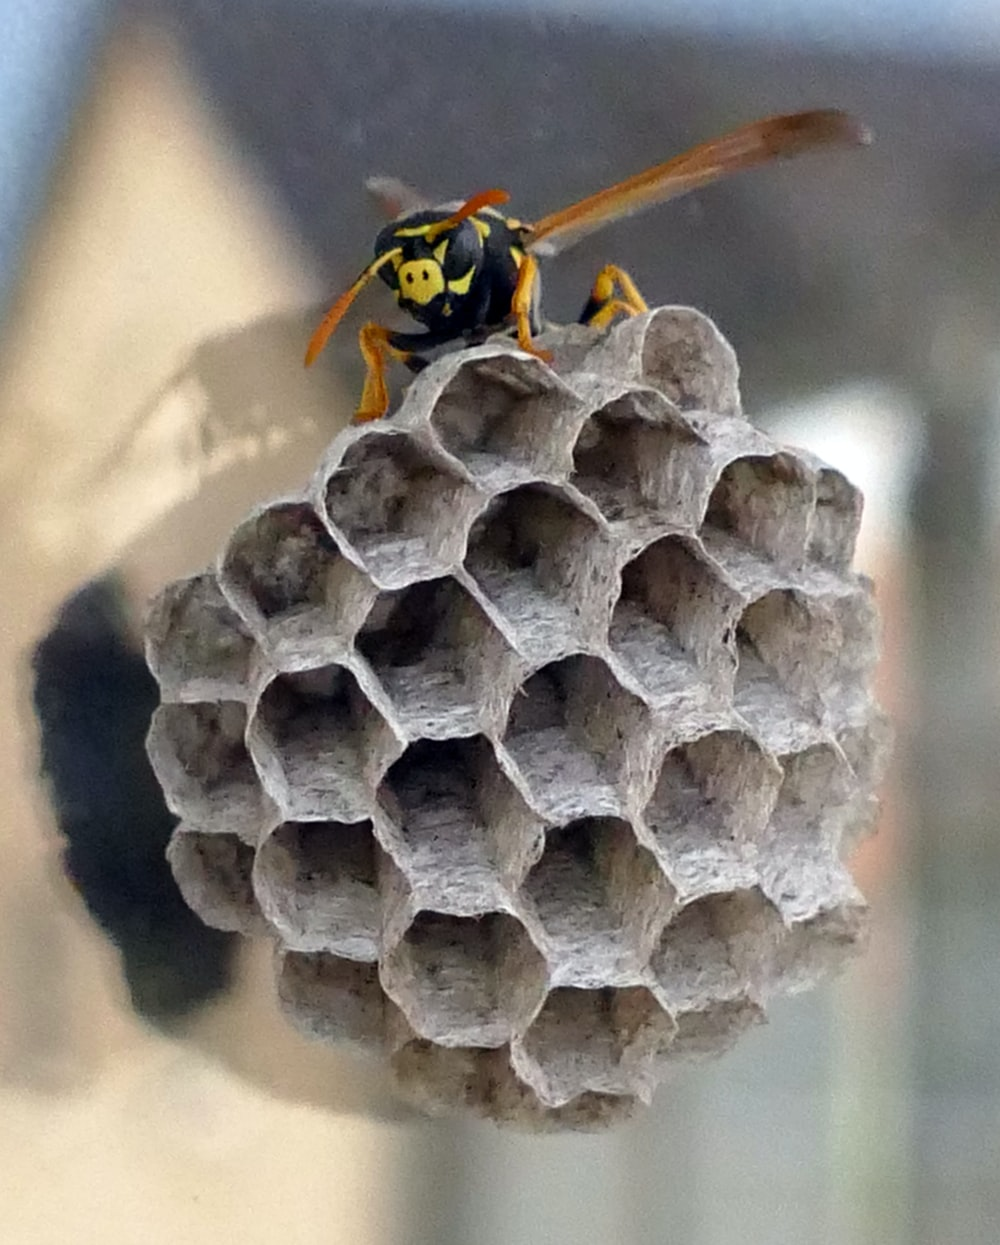 black and yellow wasp on honeycomb